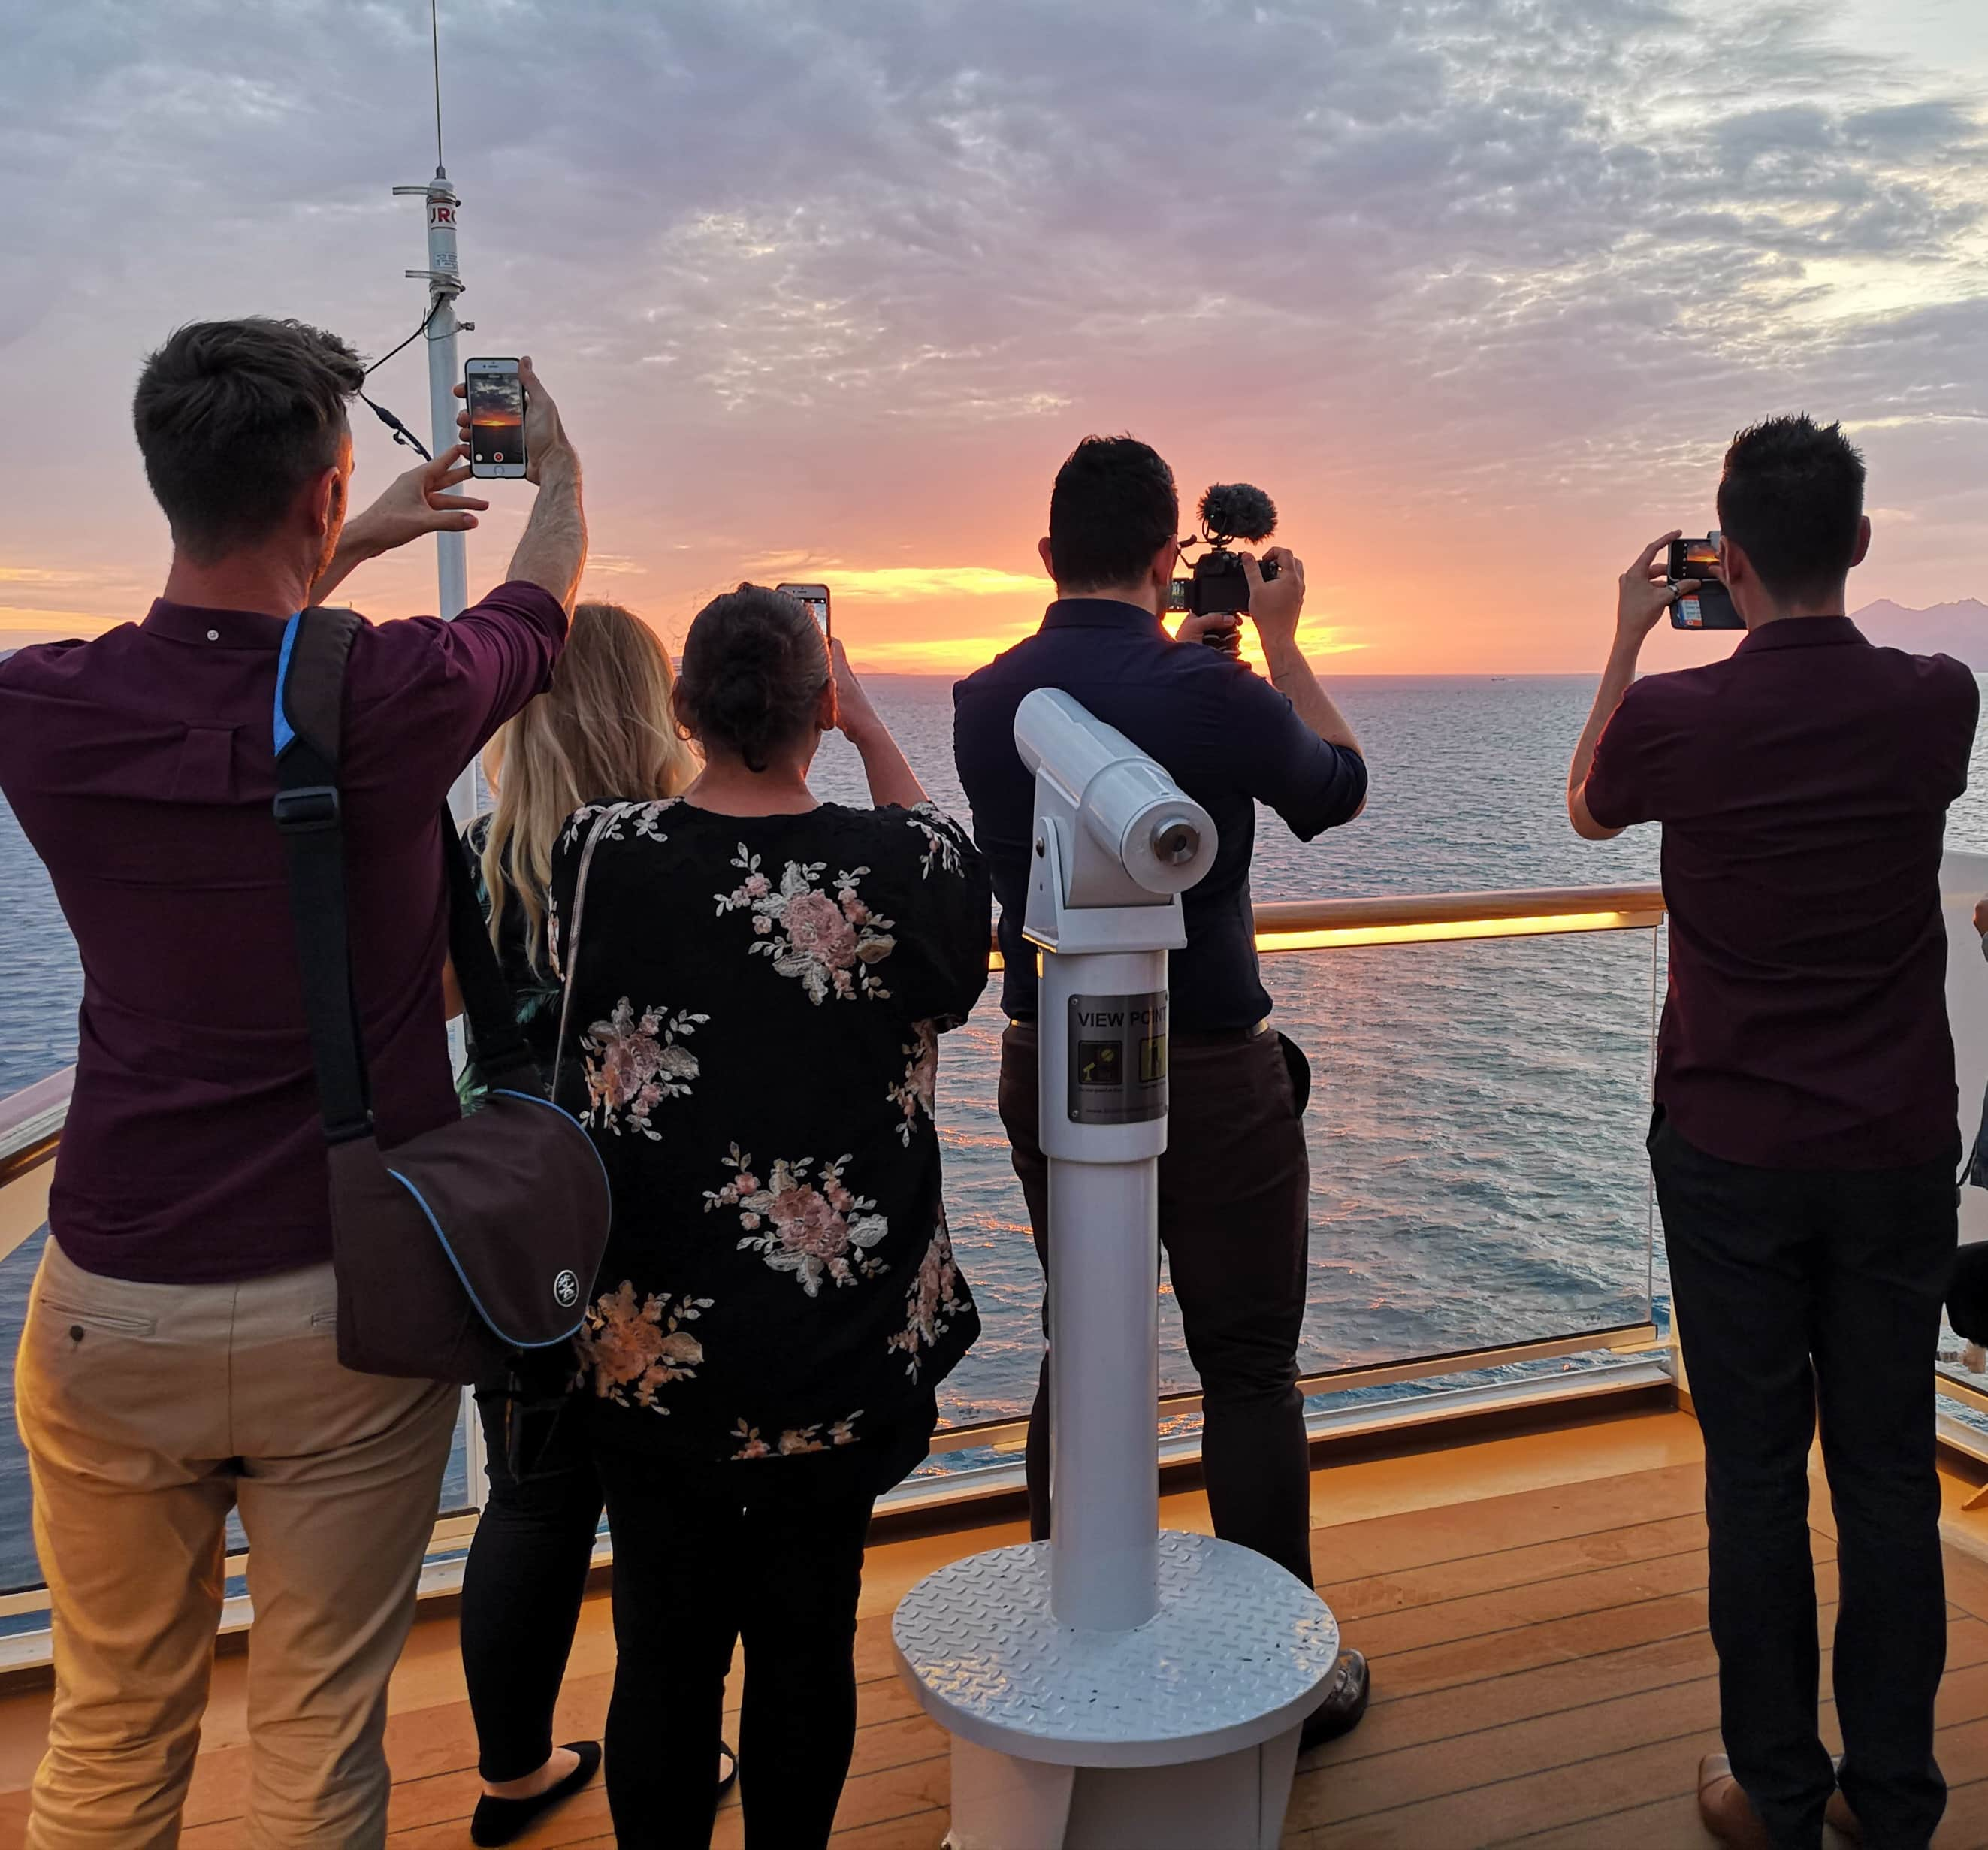 Viking Cruises Sea - Midnight Sun - Tromso - Taking pictures of sunset